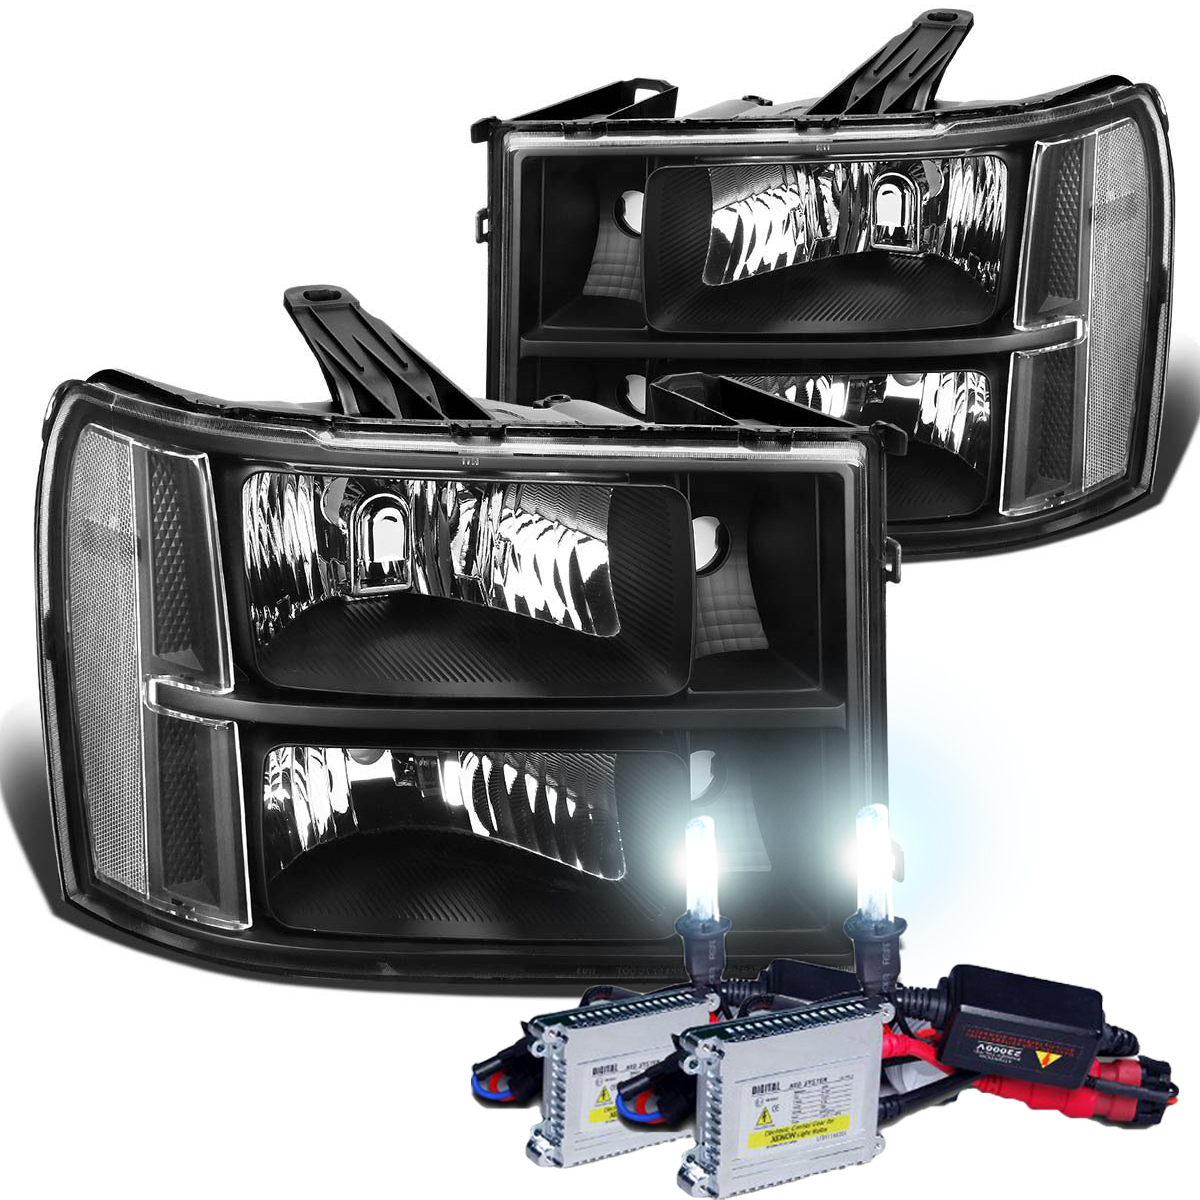 hid xenon 2007 2013 gmc sierra 1500 2500 3500 hd replacement crystal headlights black clear 43 hid xenon 2007 2013 gmc sierra 1500 2500 3500 hd replacement  at readyjetset.co